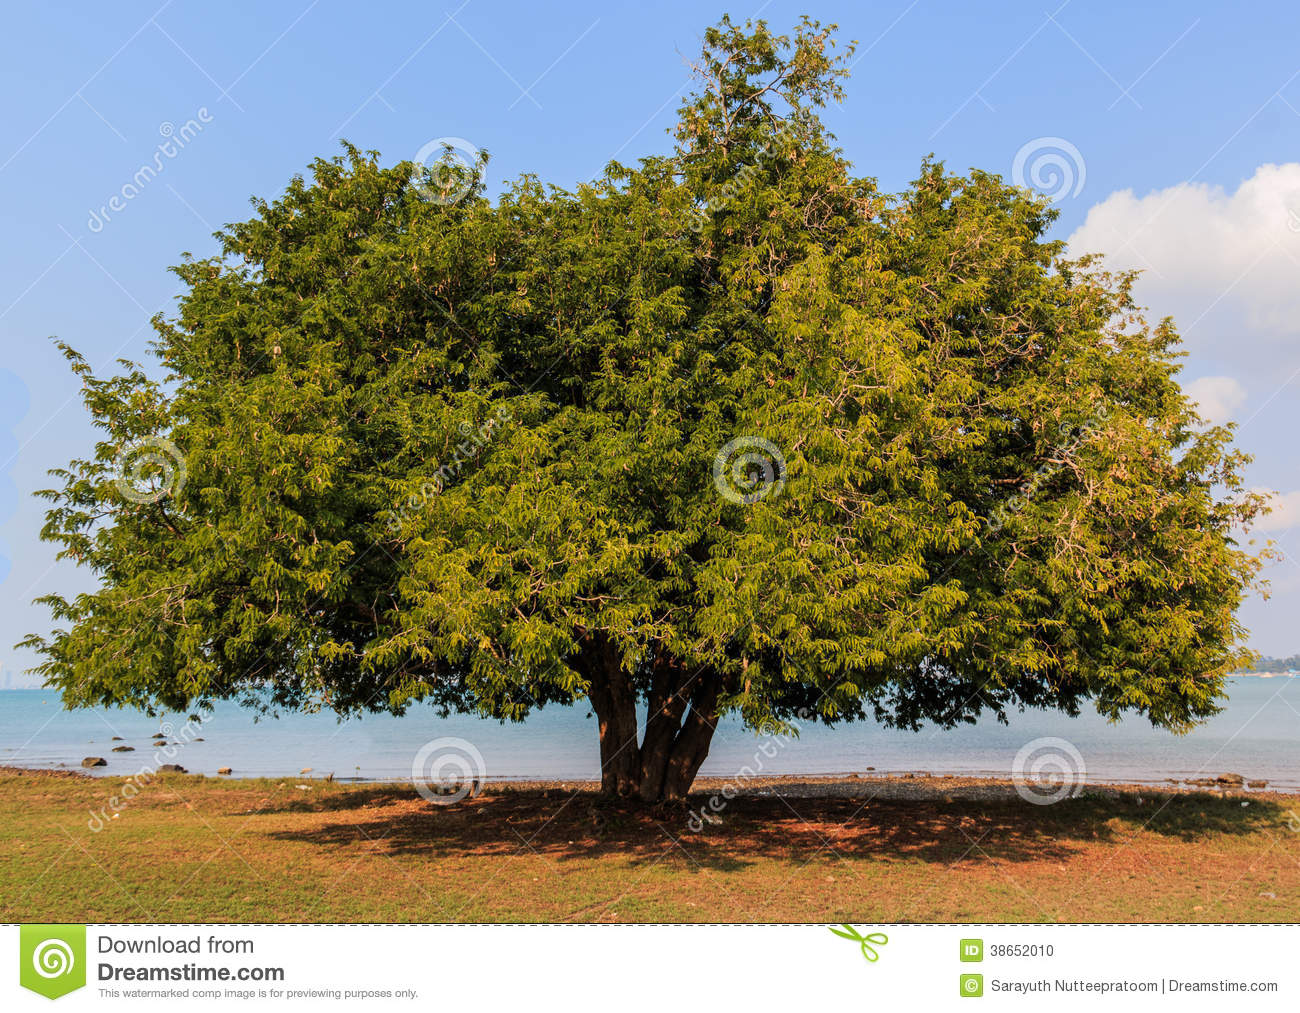 Tamarind Tree Stock Photos, Images, & Pictures.